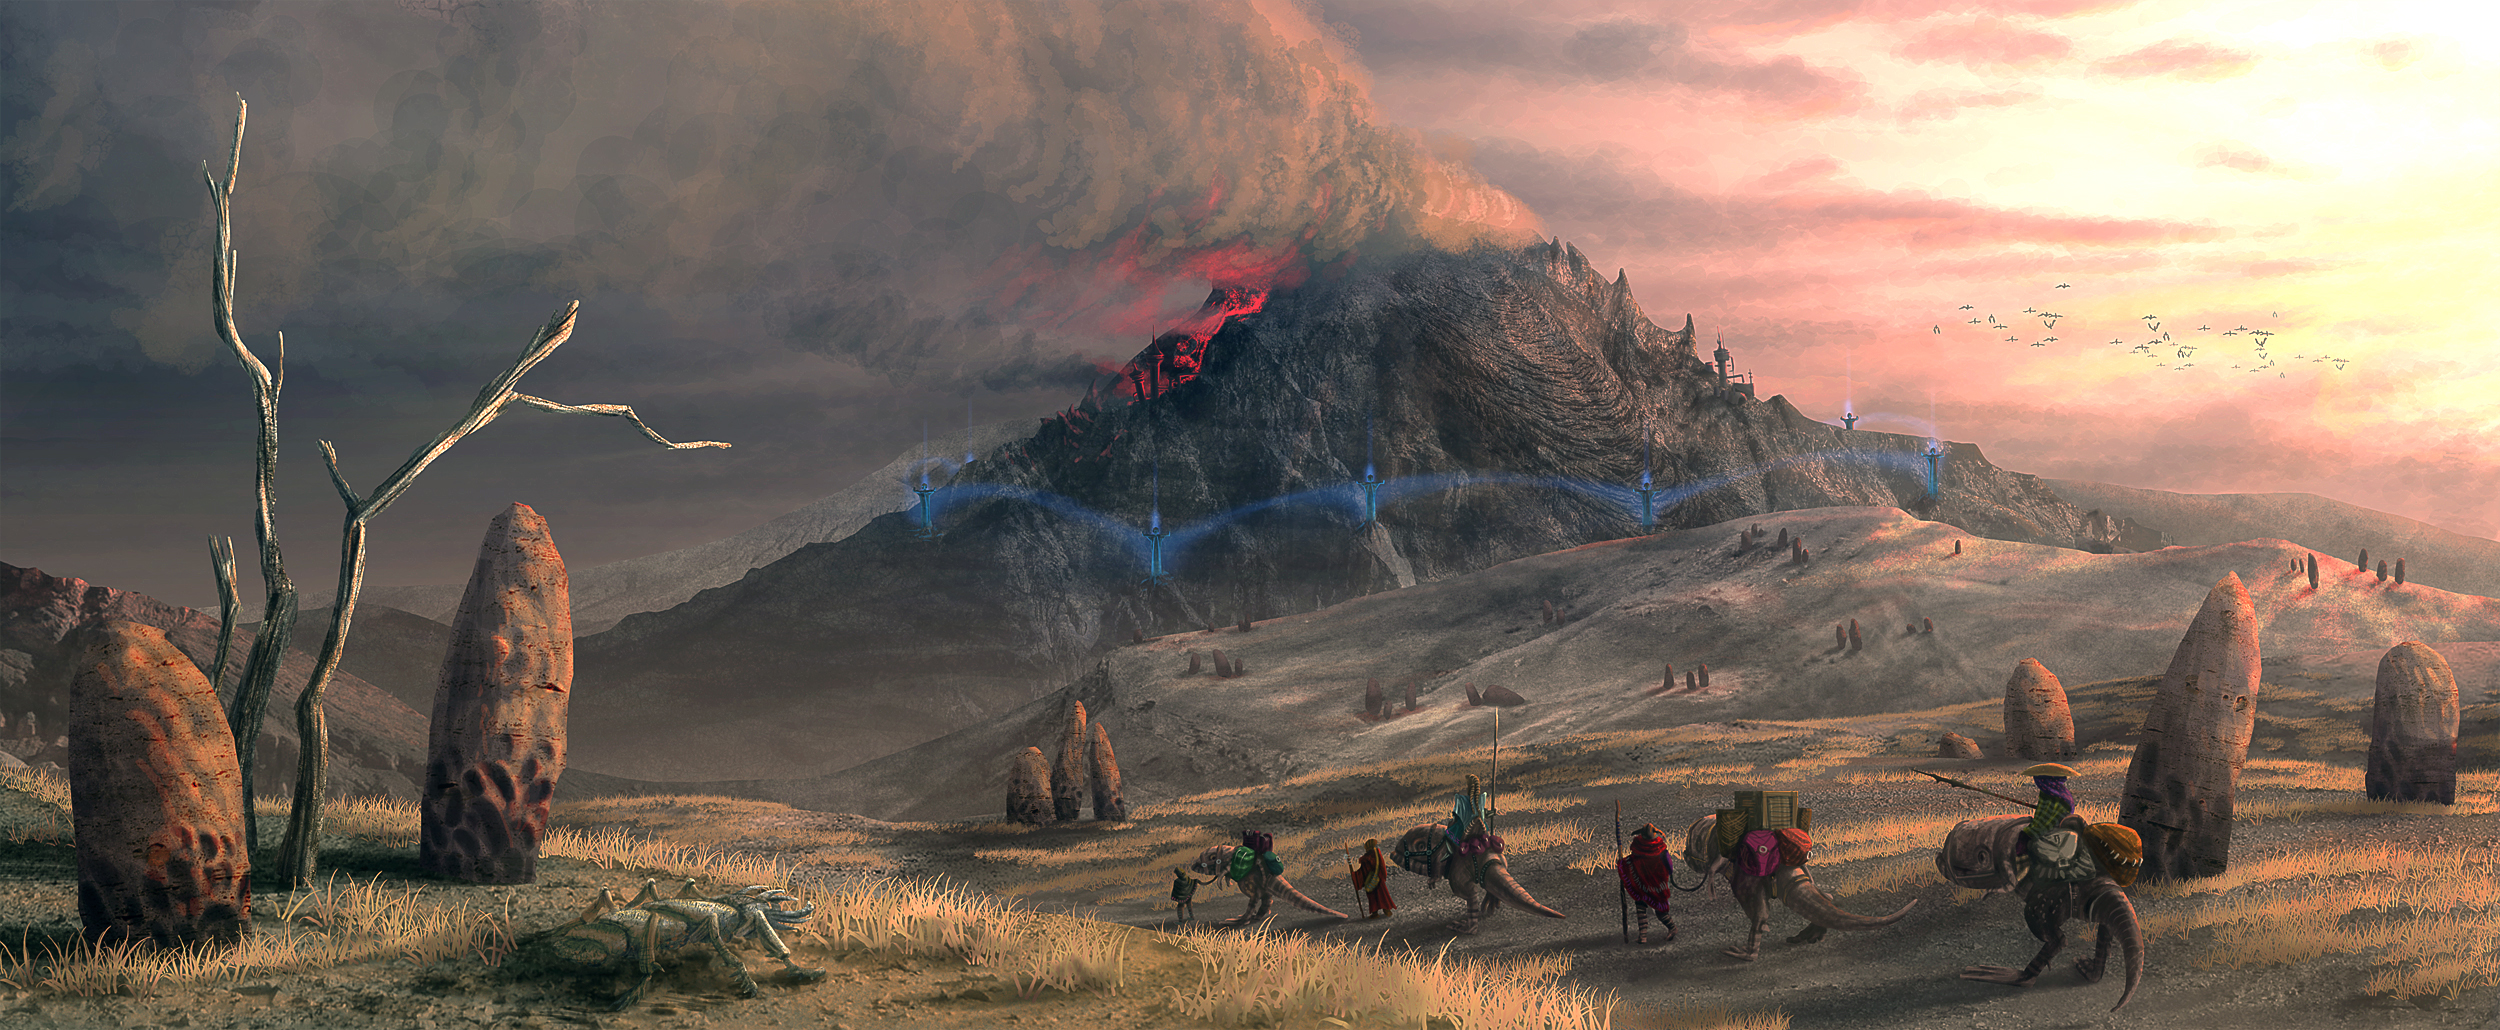 morrowind wallpaper widescreen